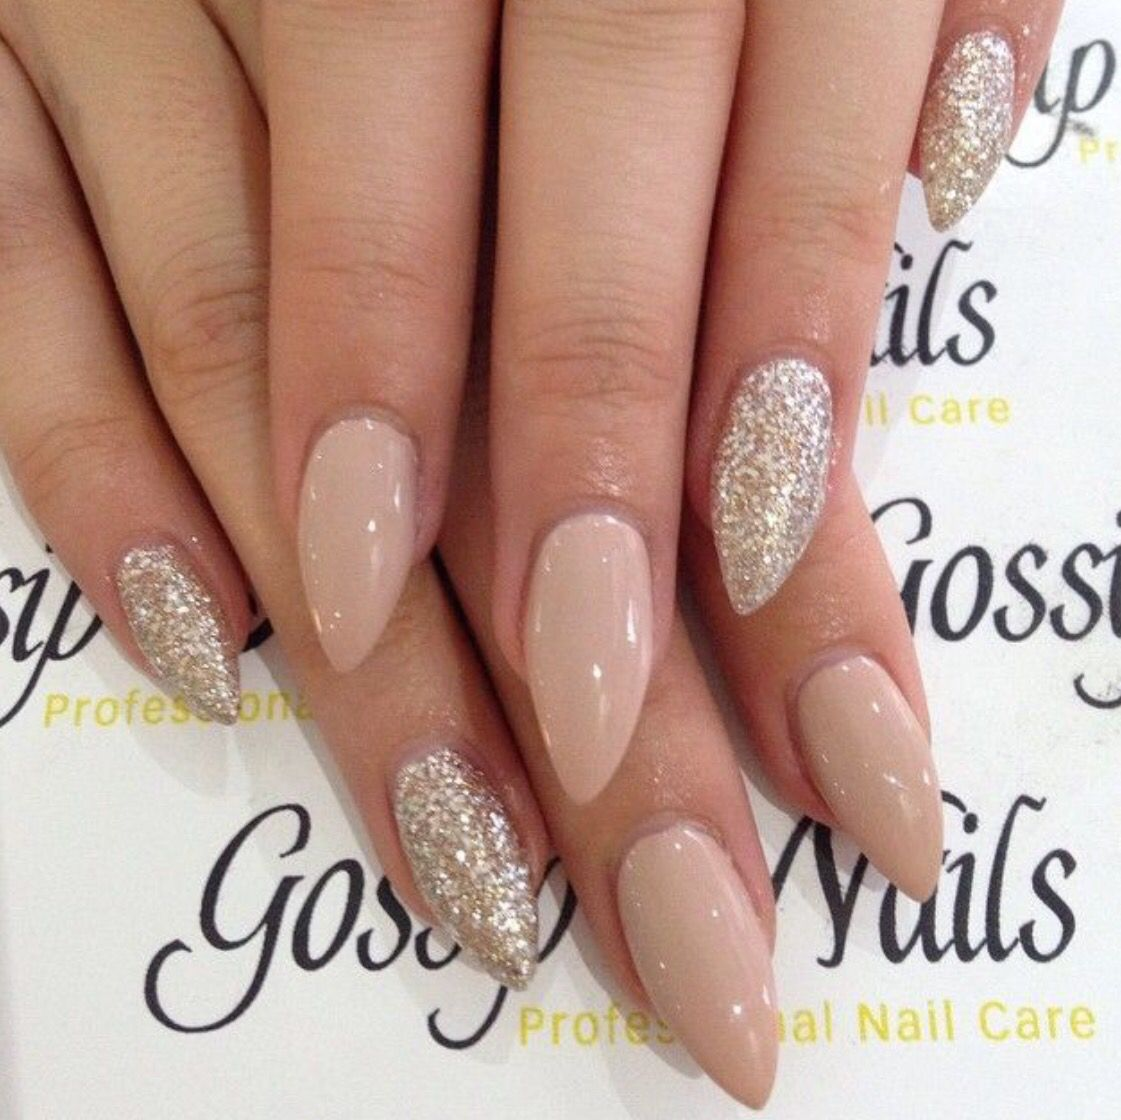 Pin by Daisy Pavon on Nails | Pinterest | Beauty bar